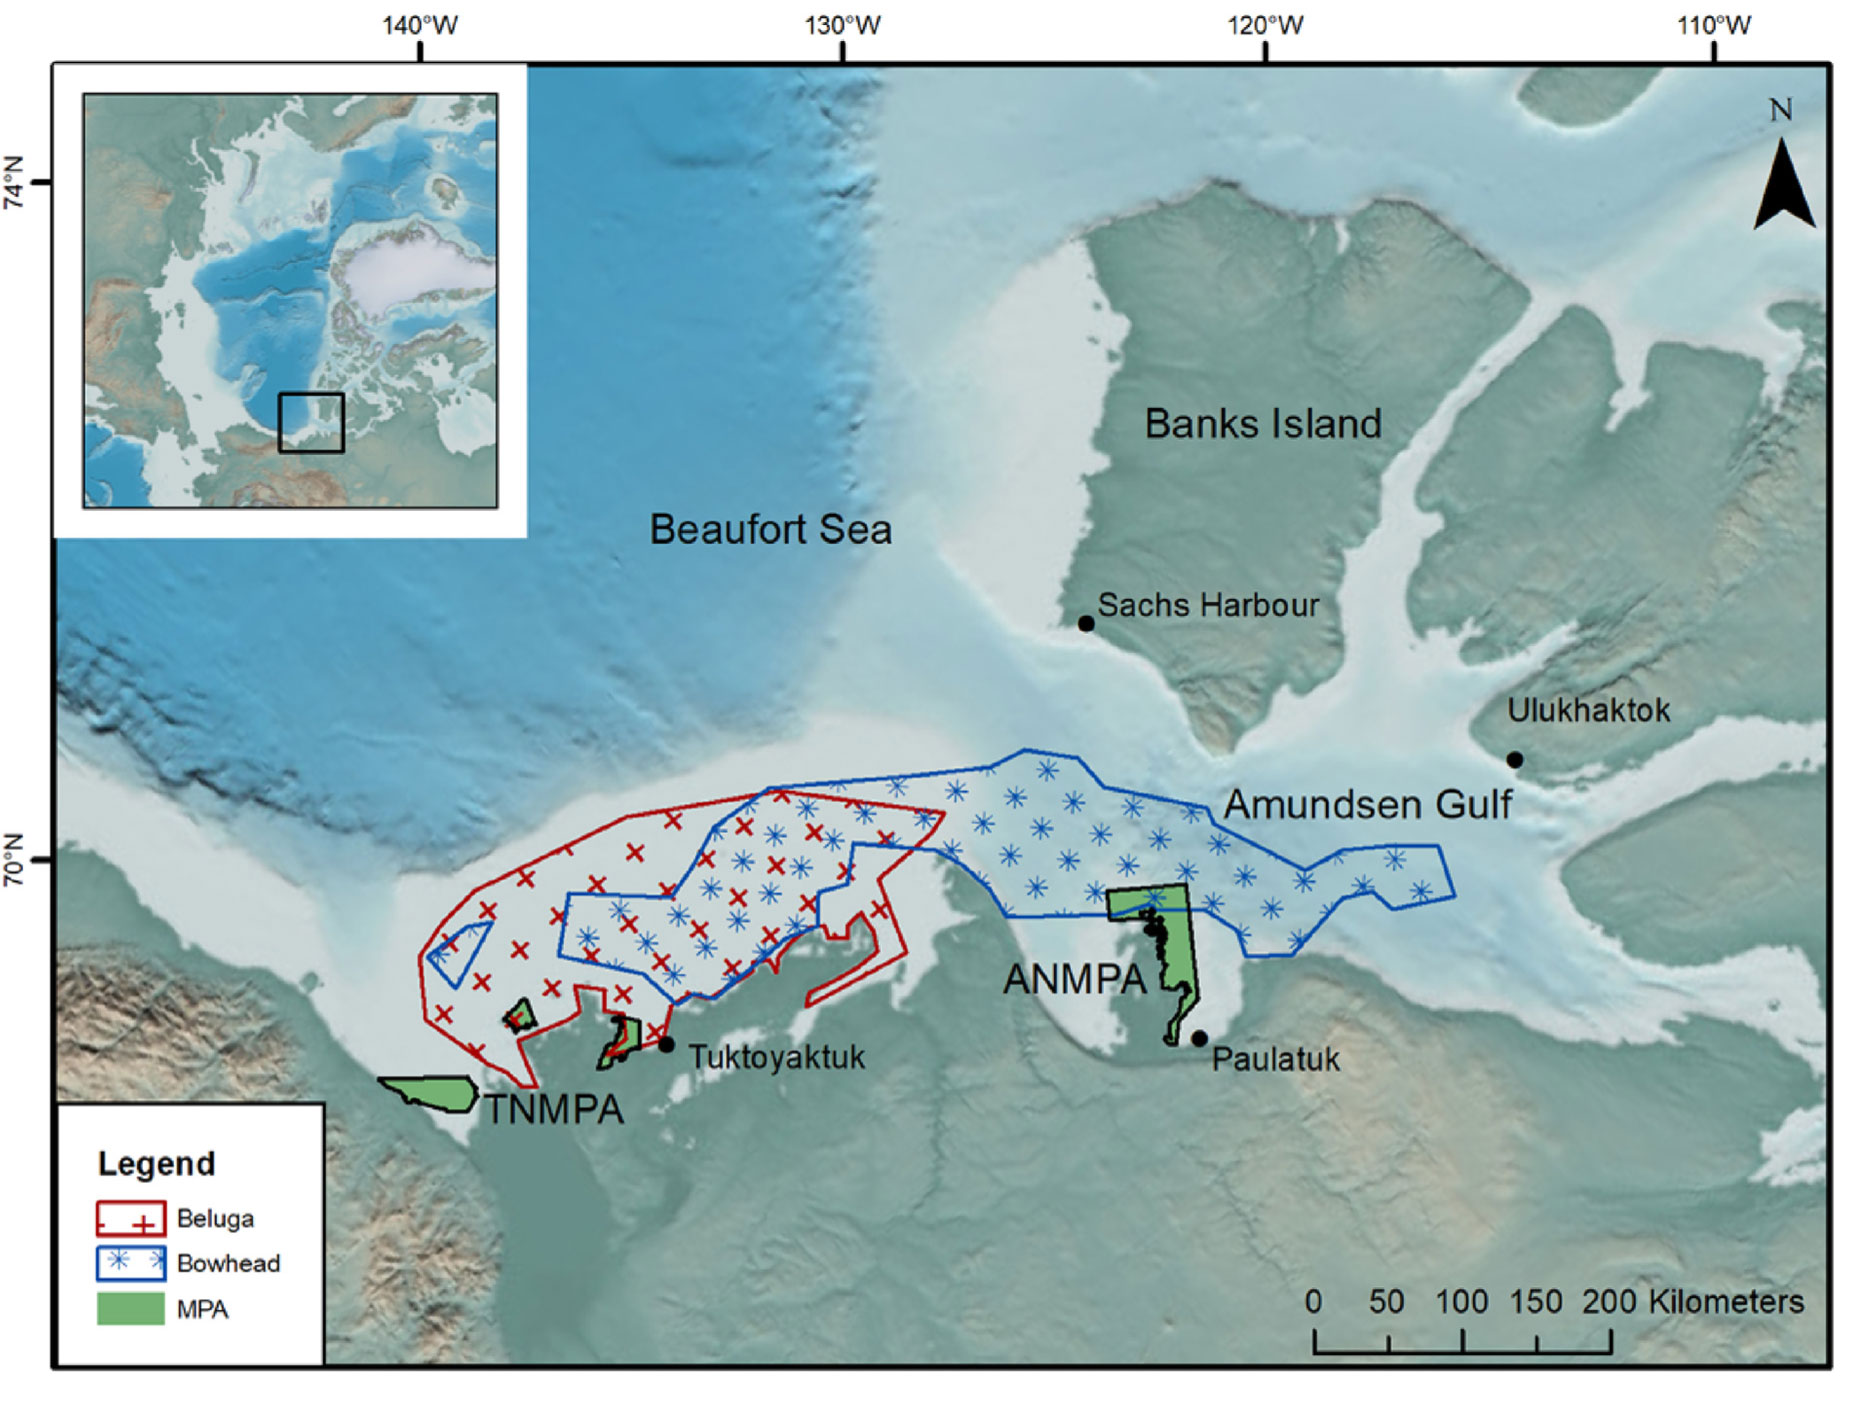 A map showing beluga and bowhead whale territory overlaid on existing Marine Protected Areas